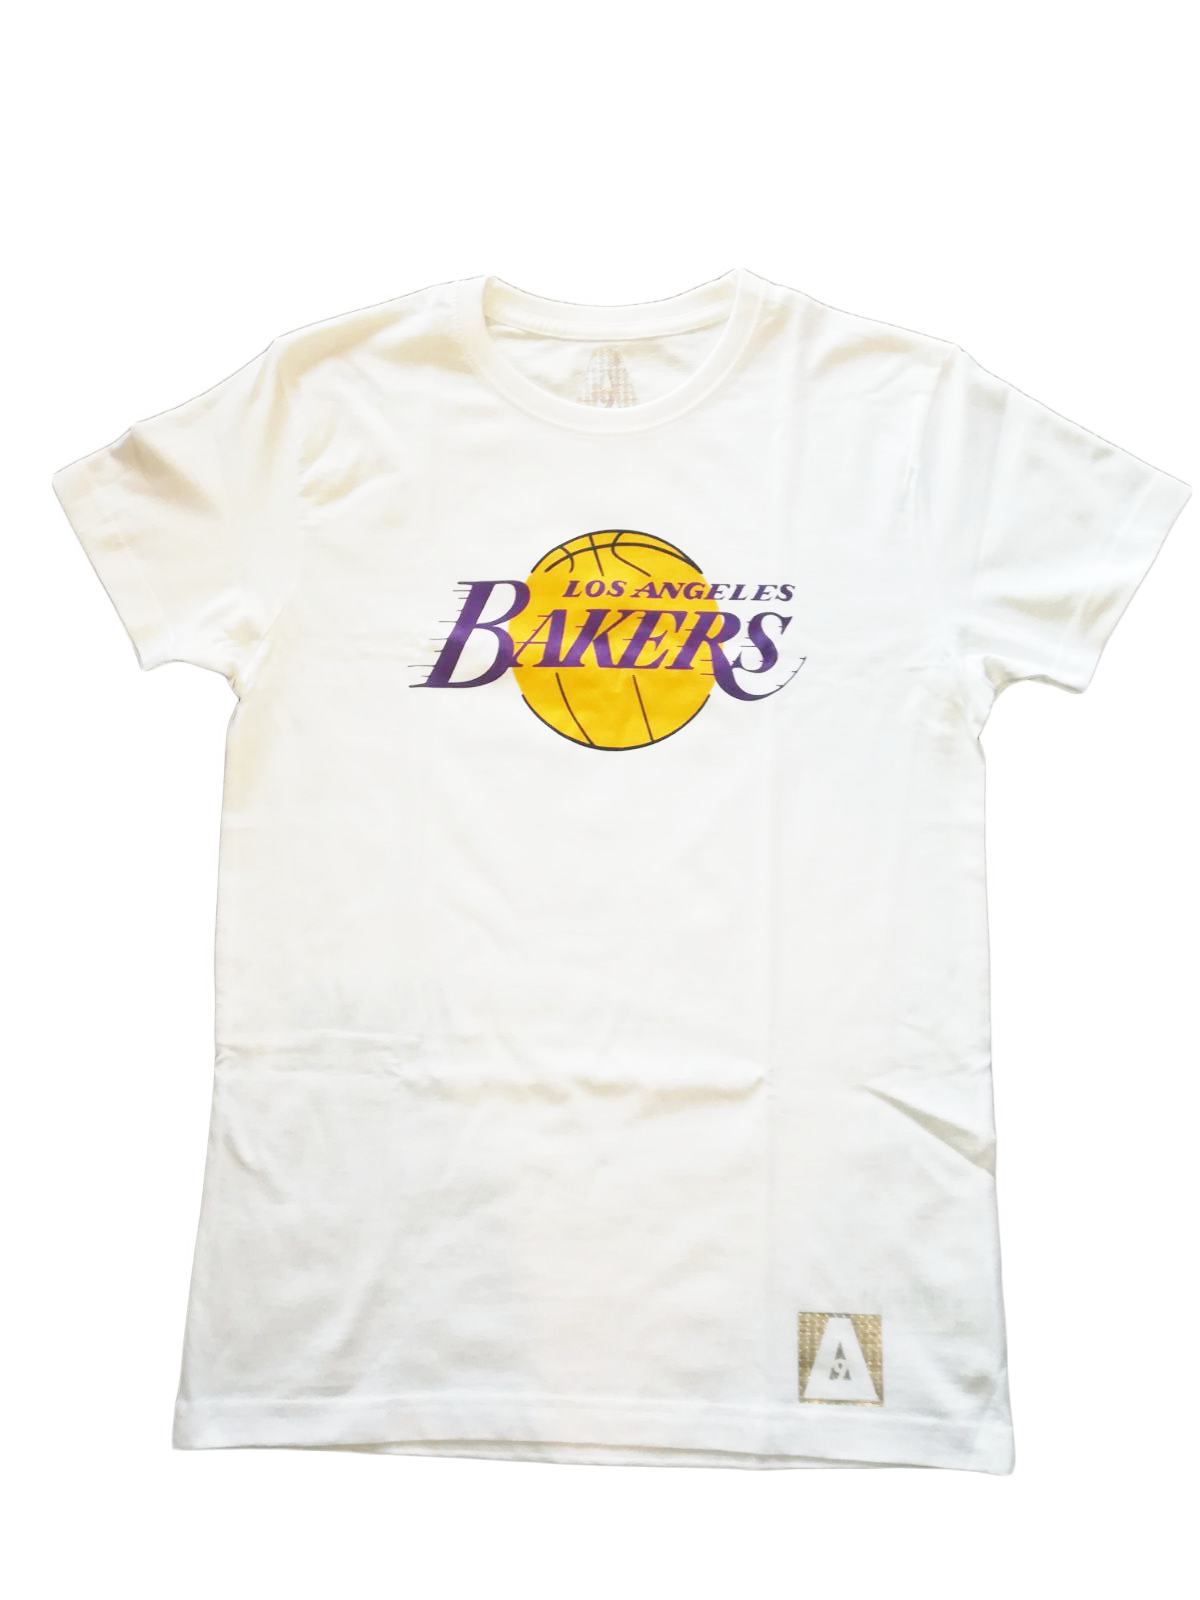 "Image of ΔELTA9INE ""L.A. BAKERS"" T-SHIRT"